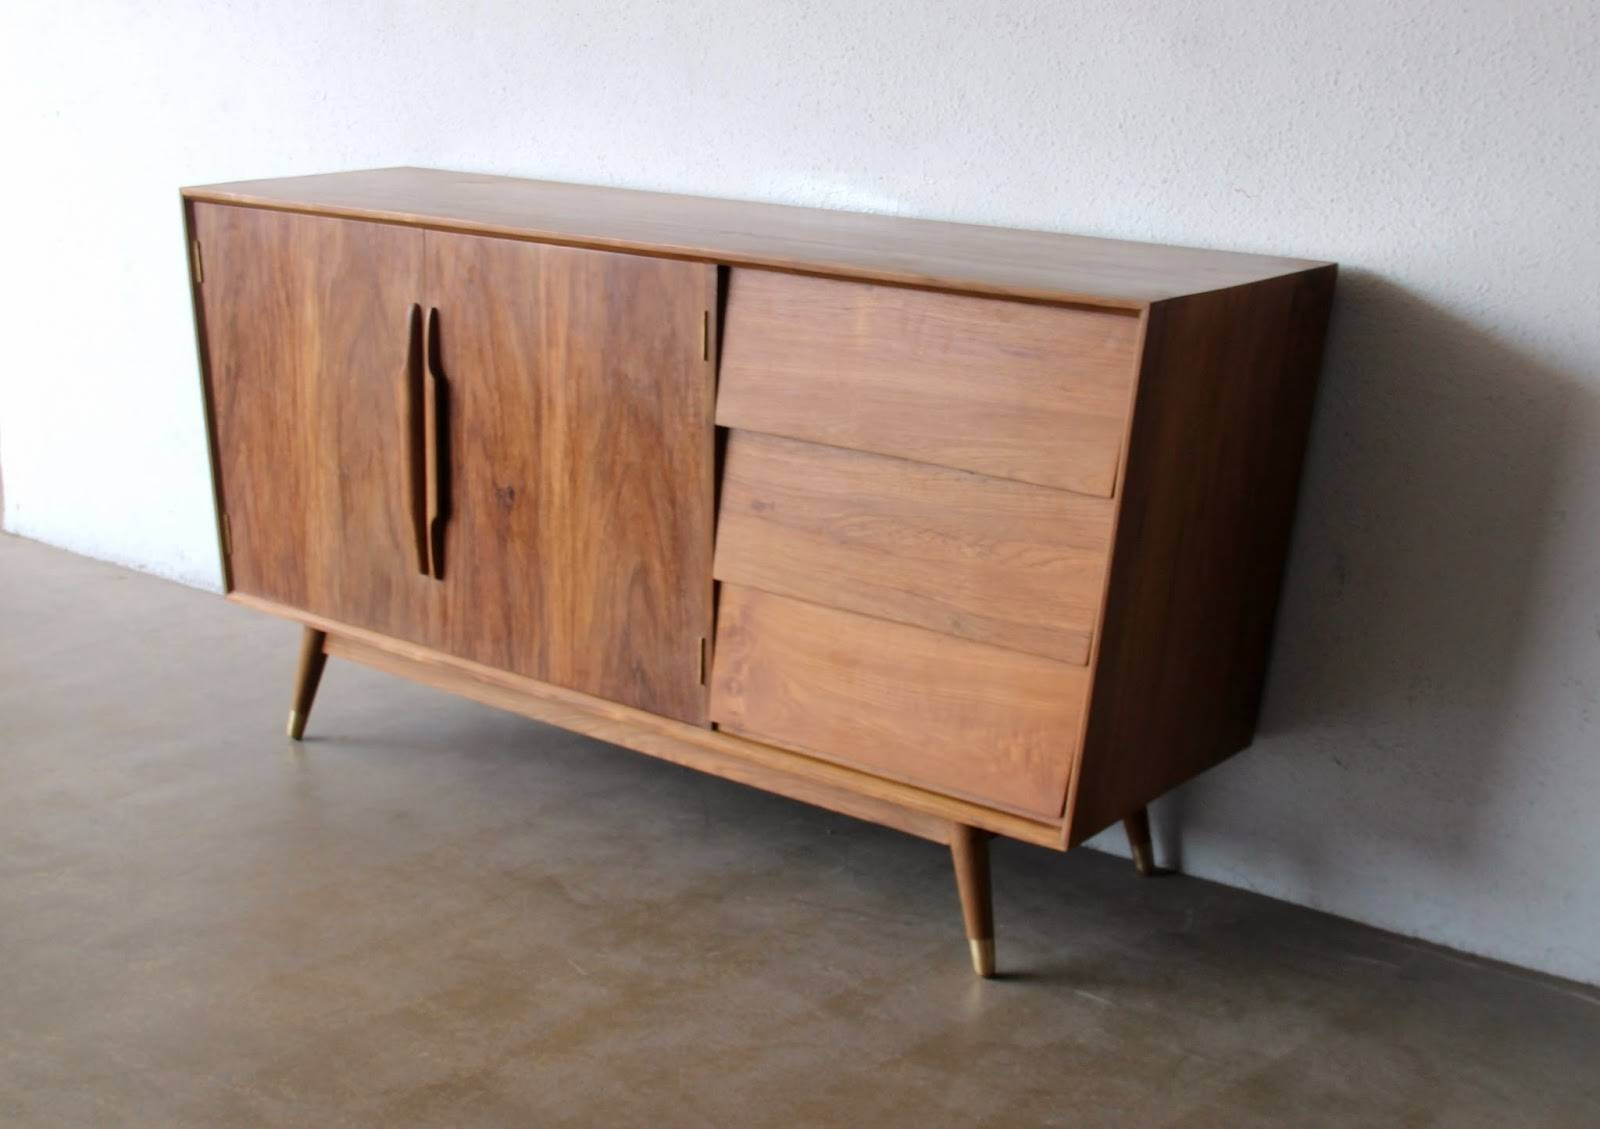 Second Charm Furniture – Mid Century Modern Influence | Bobs Furniture Intended For Mid Century Sideboards (#13 of 15)